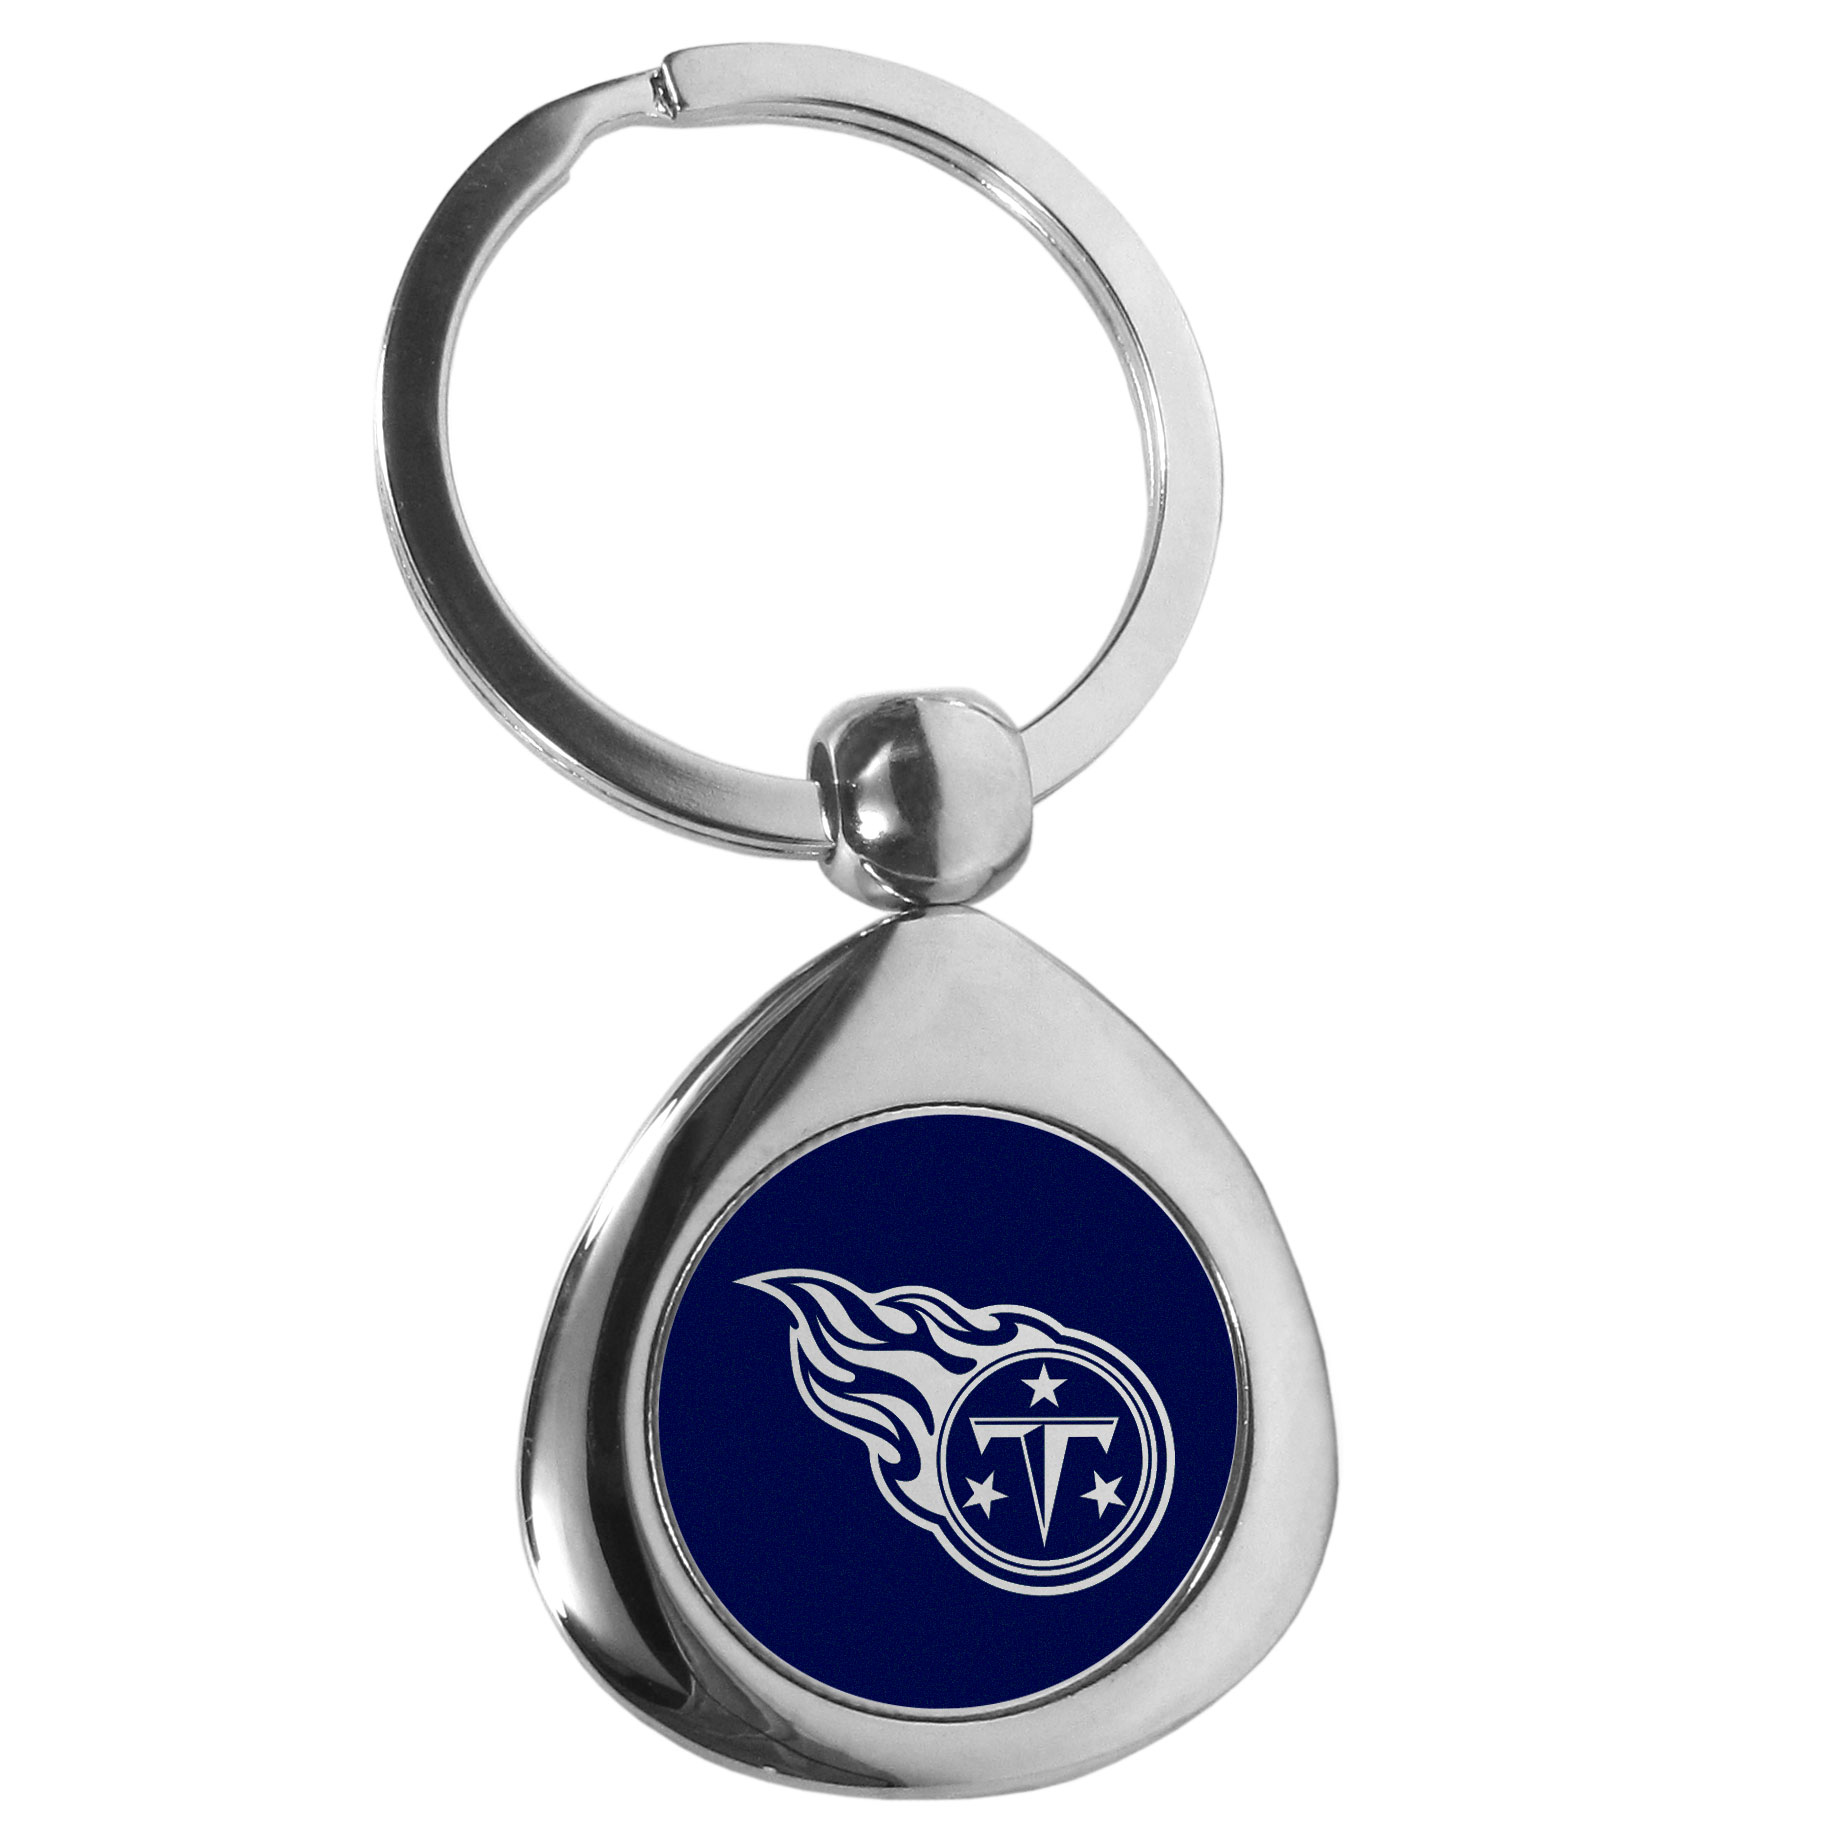 Tennessee Titans Round Teardrop Key Chain - Our high polish chrome Tennessee Titans round teardrop key chain has a classy look with a sporty twist. The high-quality key fob features the team logo in the team's primary color. The key ring is a flat split ring that is easier to load you home and auto keys onto.